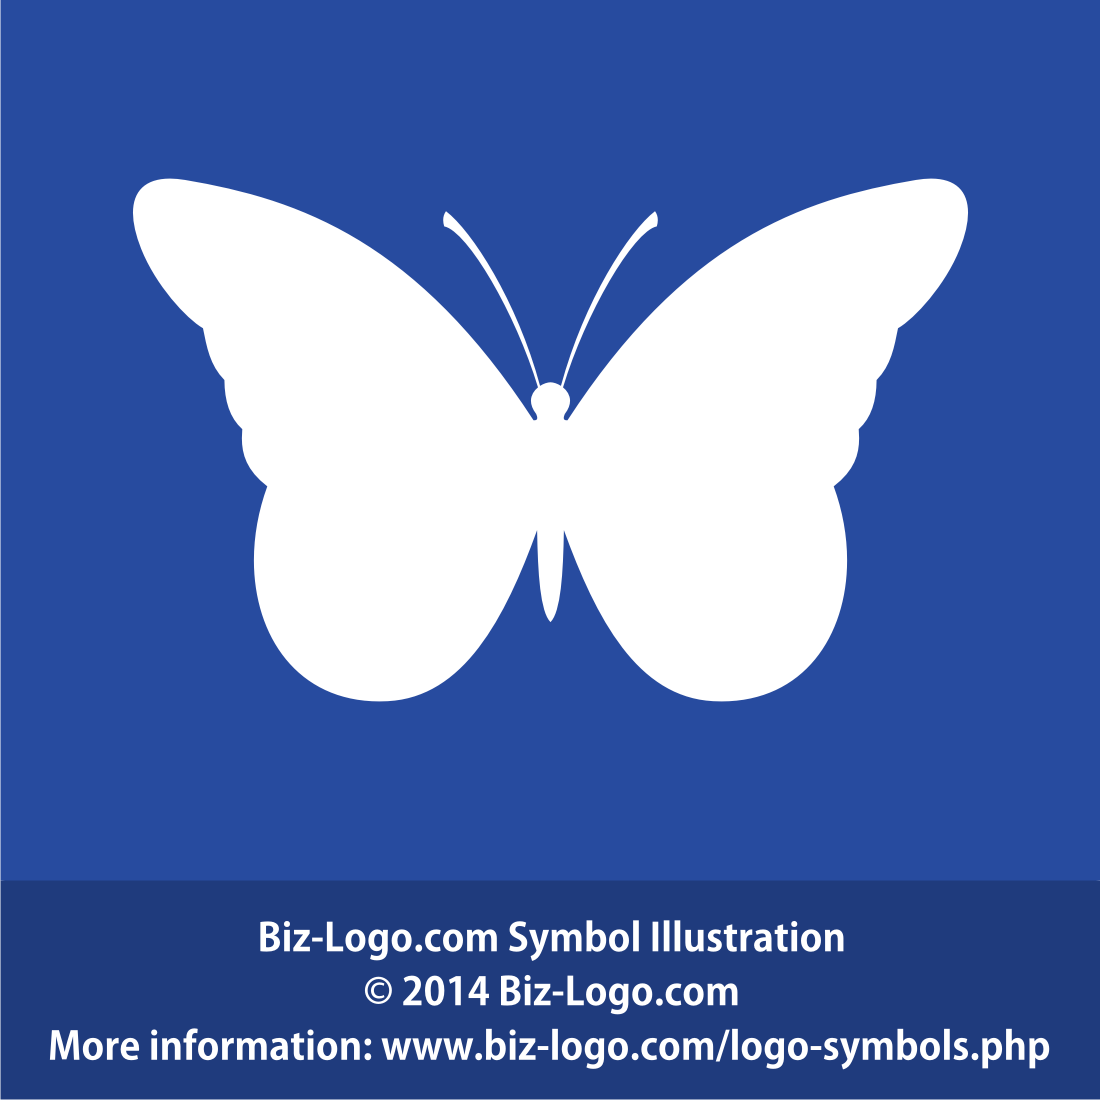 Butterfly symbol explained 67cce butterfly logo symbol png biocorpaavc Images